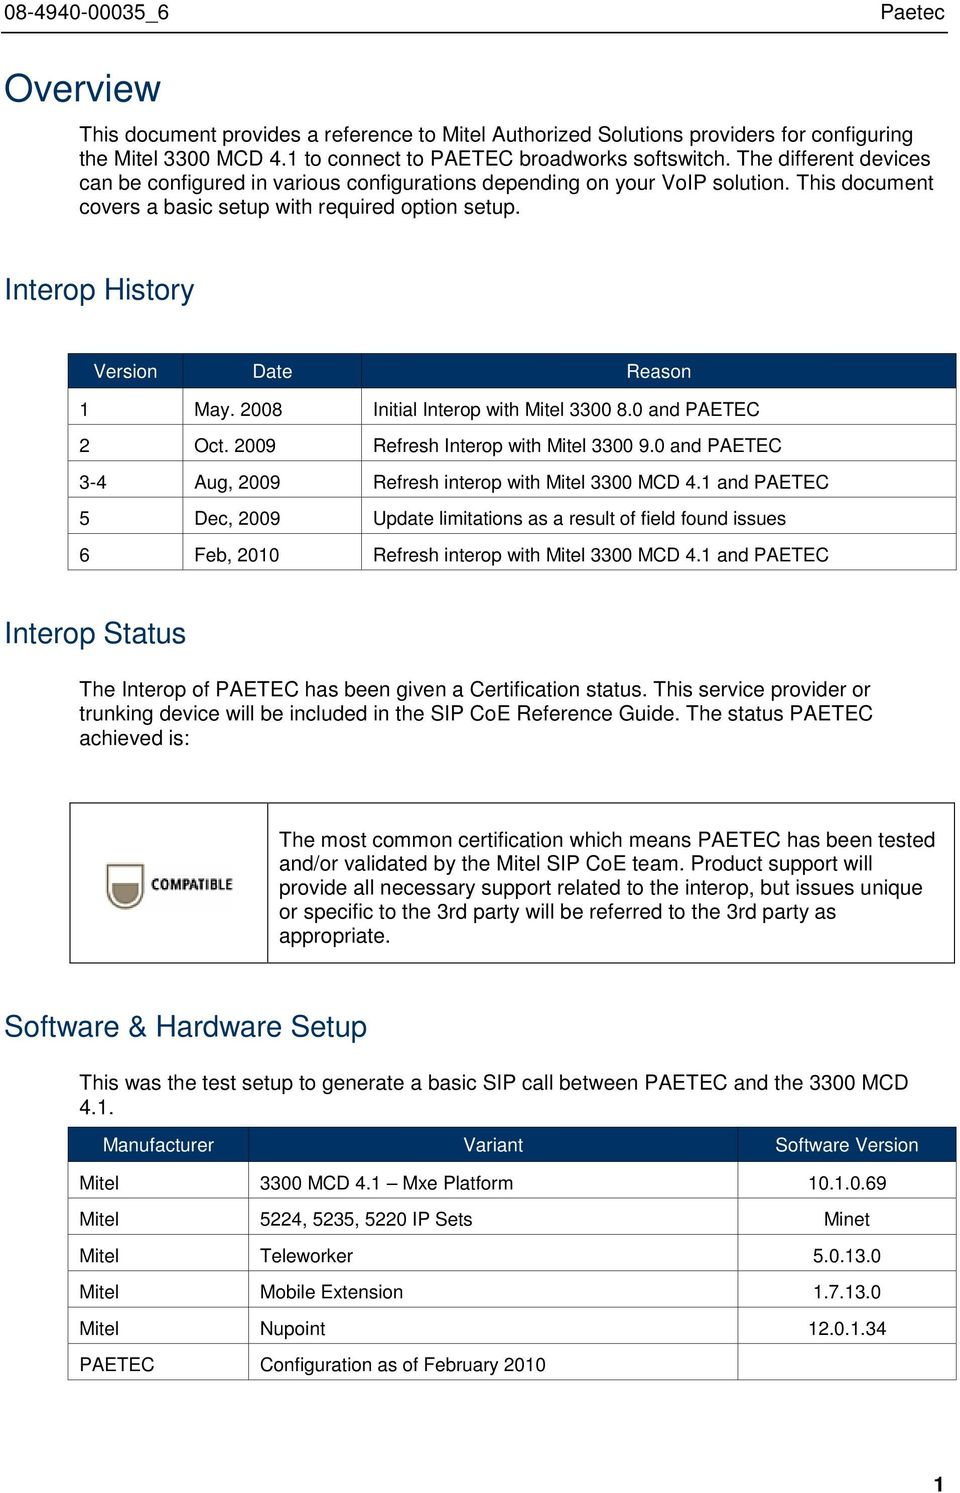 Interop History Version Date Reason 1 May. 2008 Initial Interop with Mitel 3300 8.0 and PAETEC 2 Oct. 2009 Refresh Interop with Mitel 3300 9.